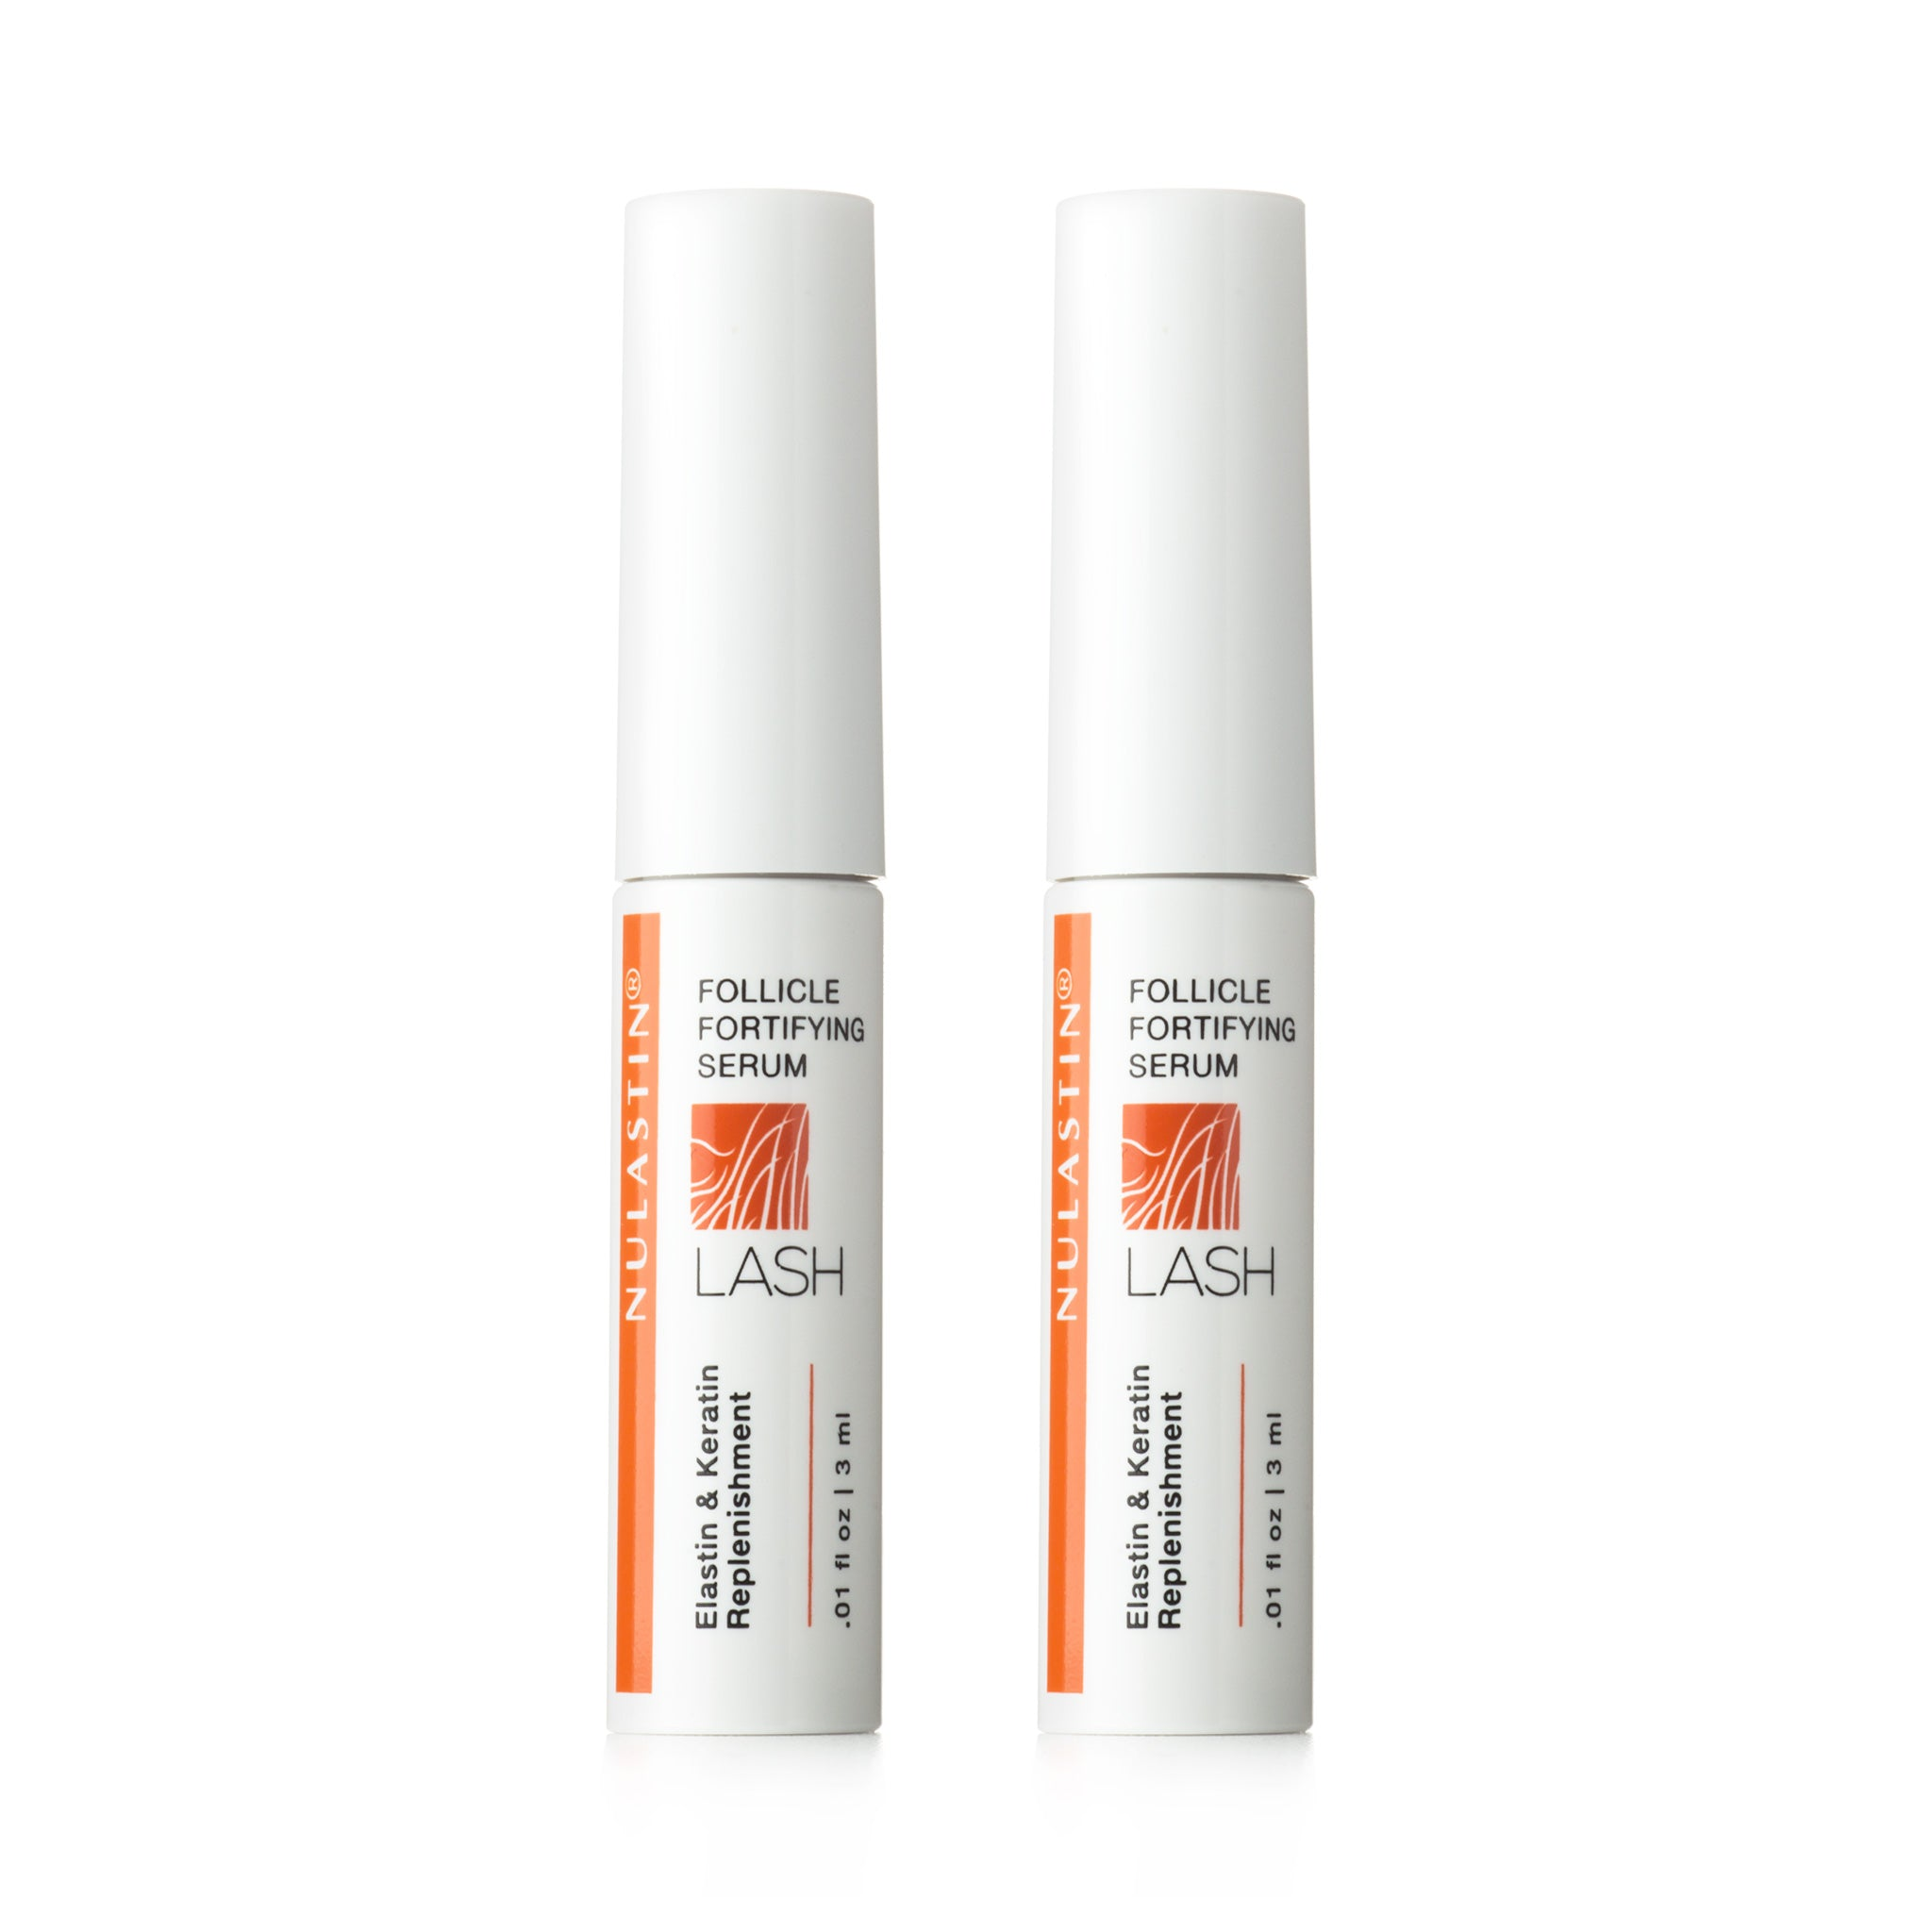 New! LASH 2-PACK Follicle Fortifying Serum with Keracyte® Elastin Complex